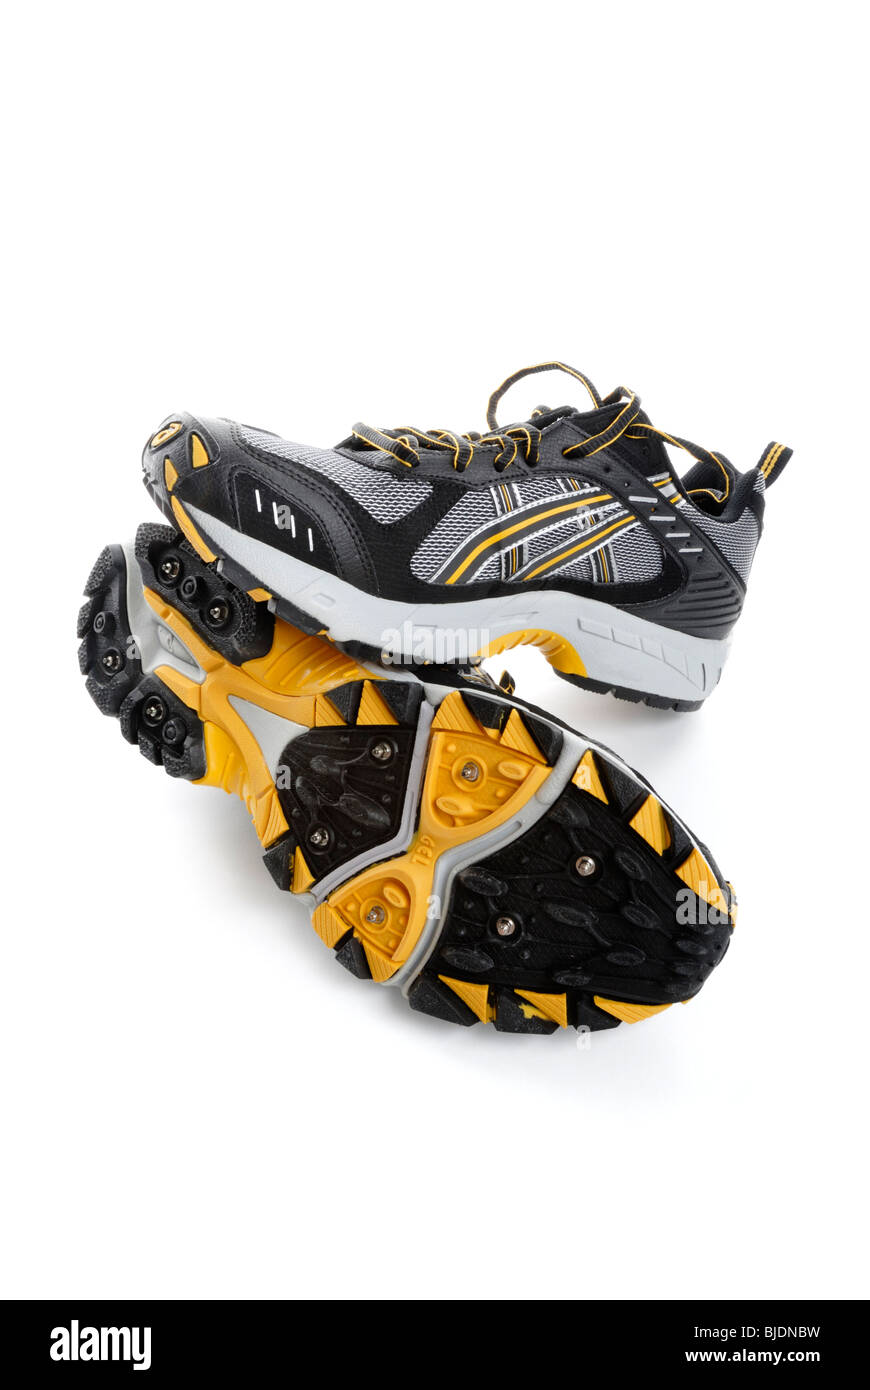 94725142028f Water-proof running shoes with spikes for traction on snow and ice ...